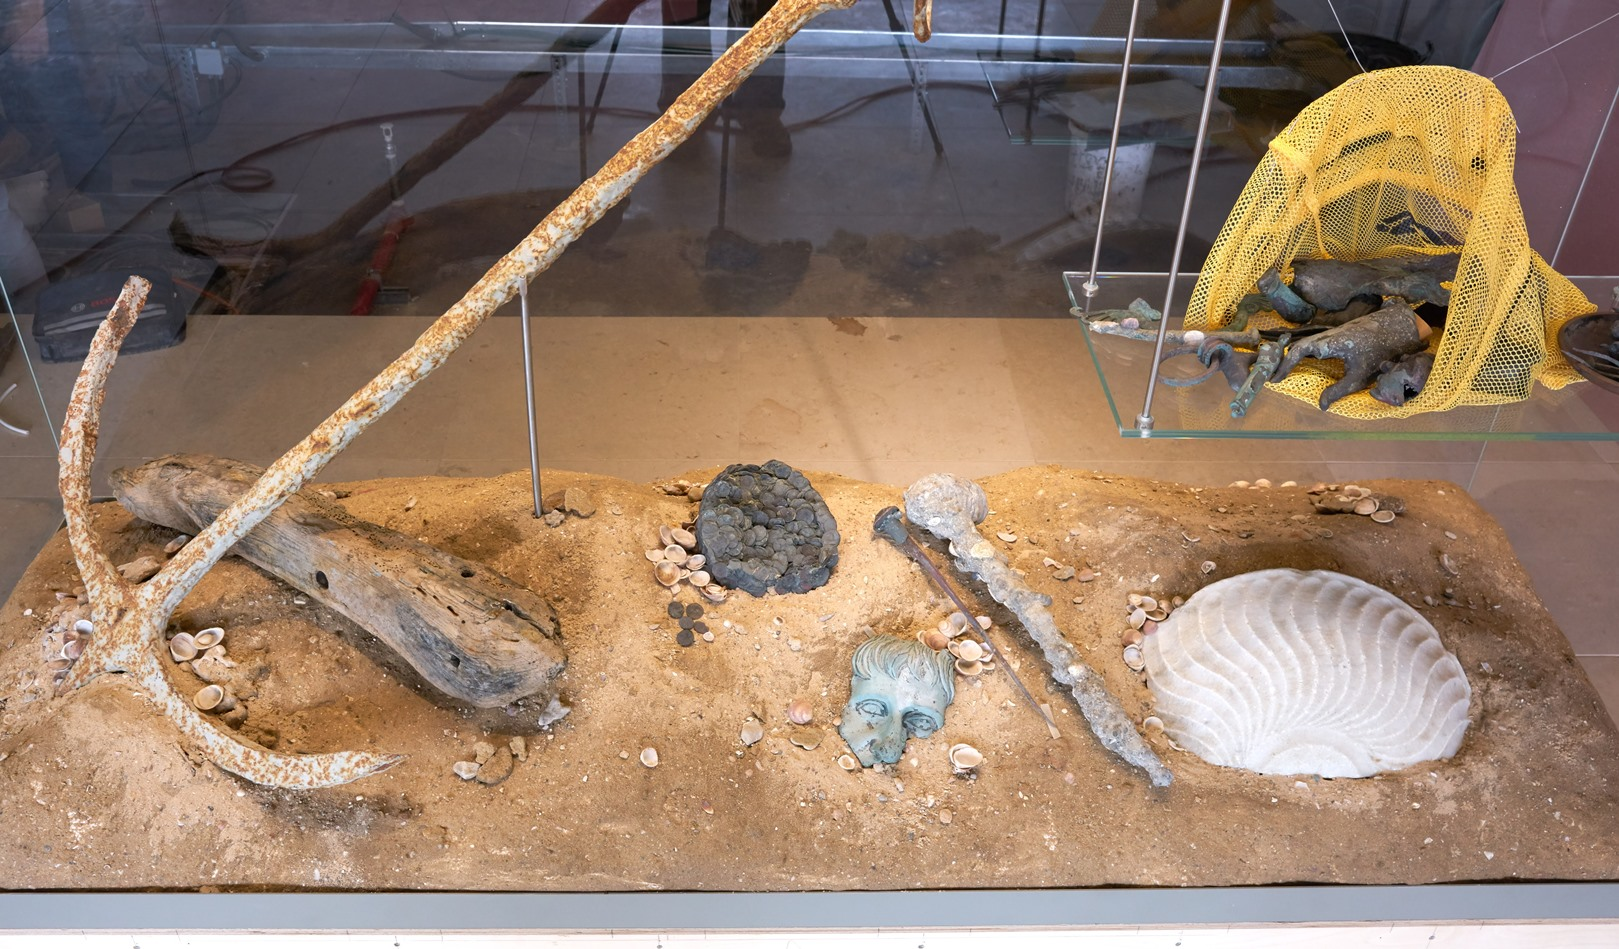 Exhibit of ancient objects found off the coast of Caesarea. Photo by Ardon Bar-Hama